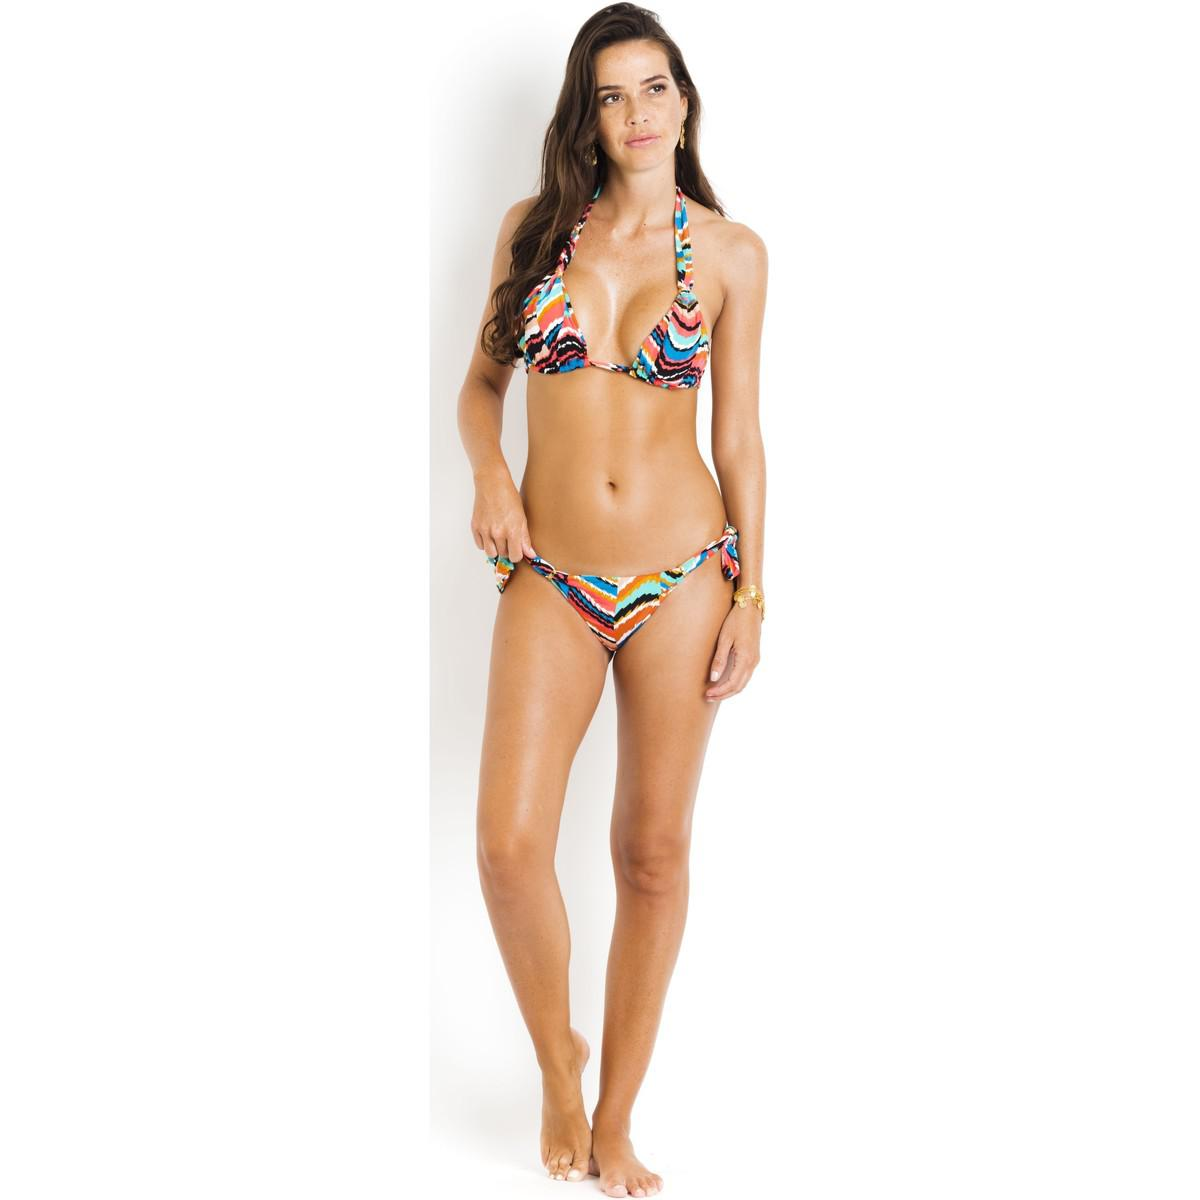 Bikini bottom knotted sides SALINAS Multicolored - Queen Salinas Geniue Stockist Official Site u4pXFPJqLP